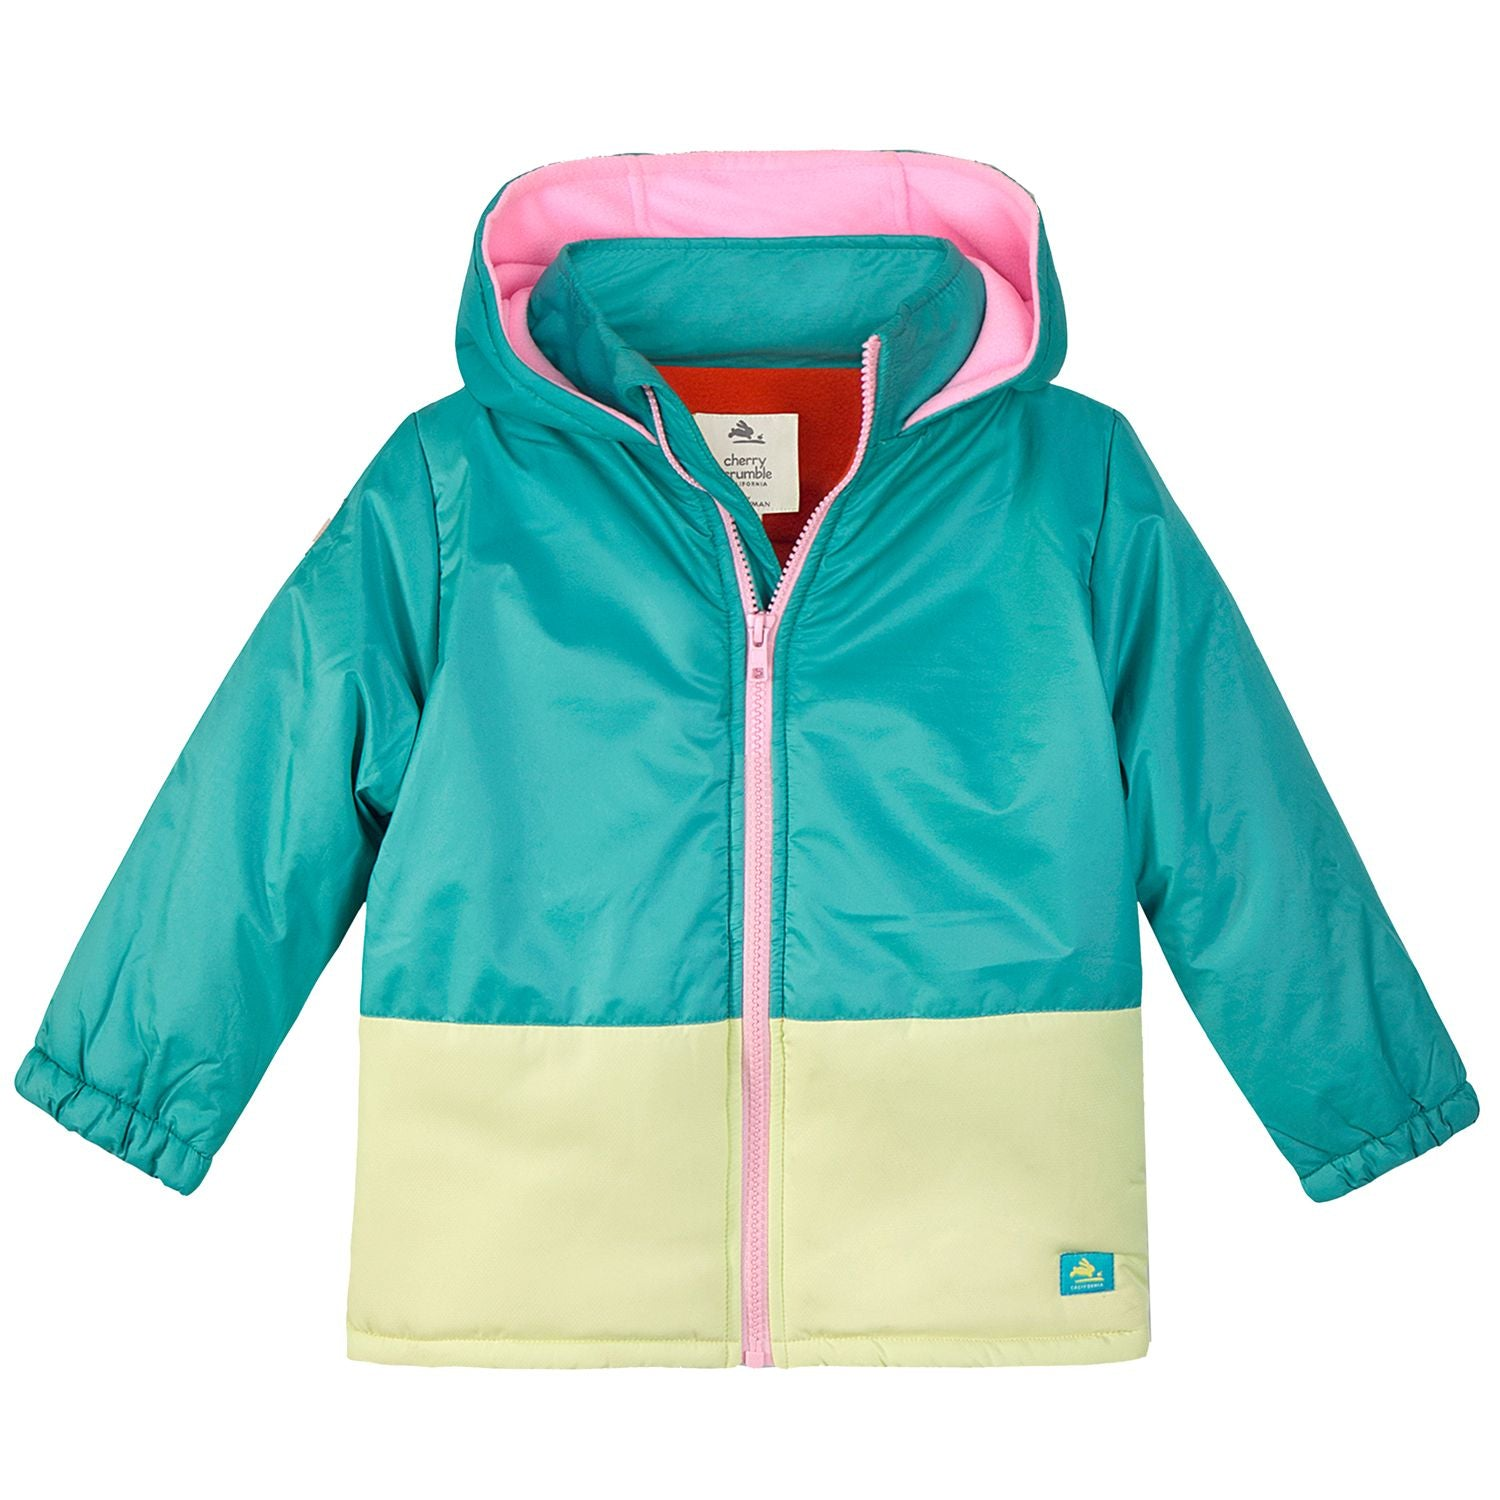 Soft Fleece Lined Puffer Jacket for Boys